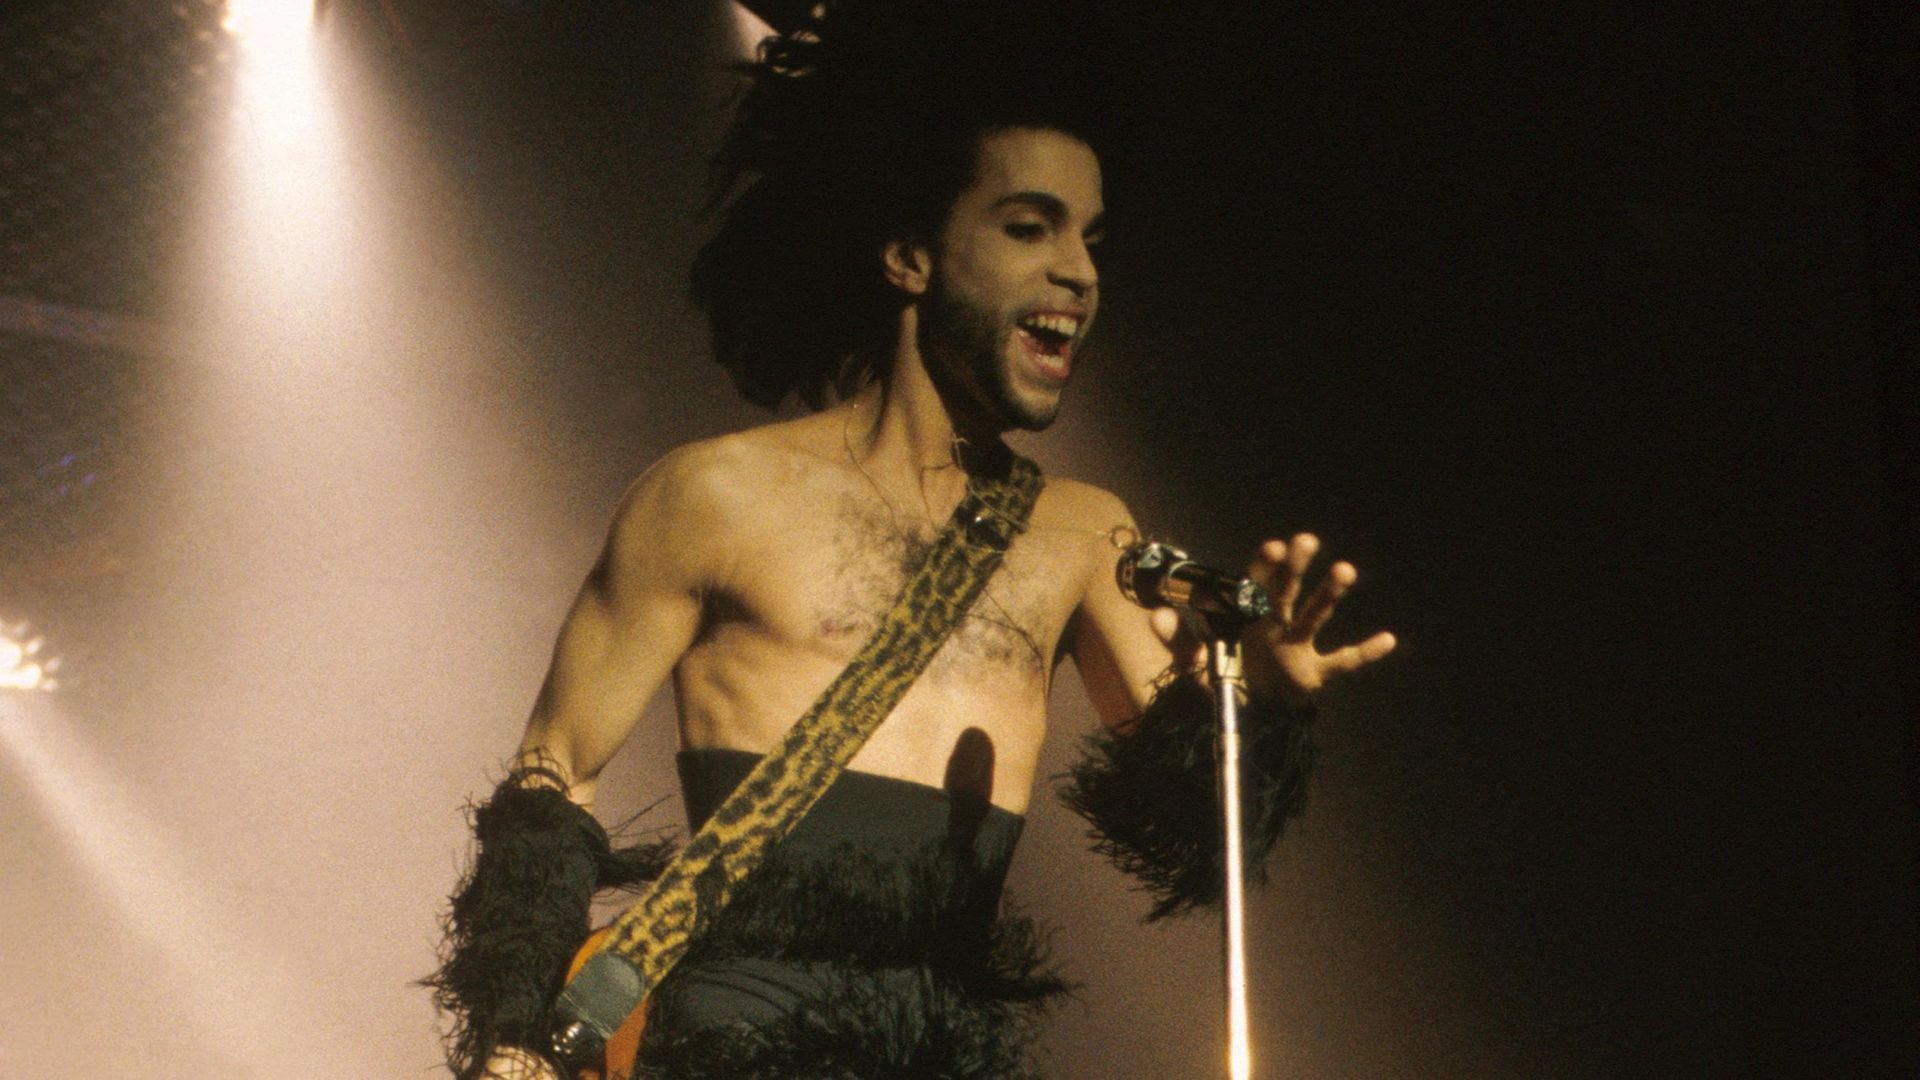 Prince performing in Minneapolis in 1990. - Credit: Getty Images